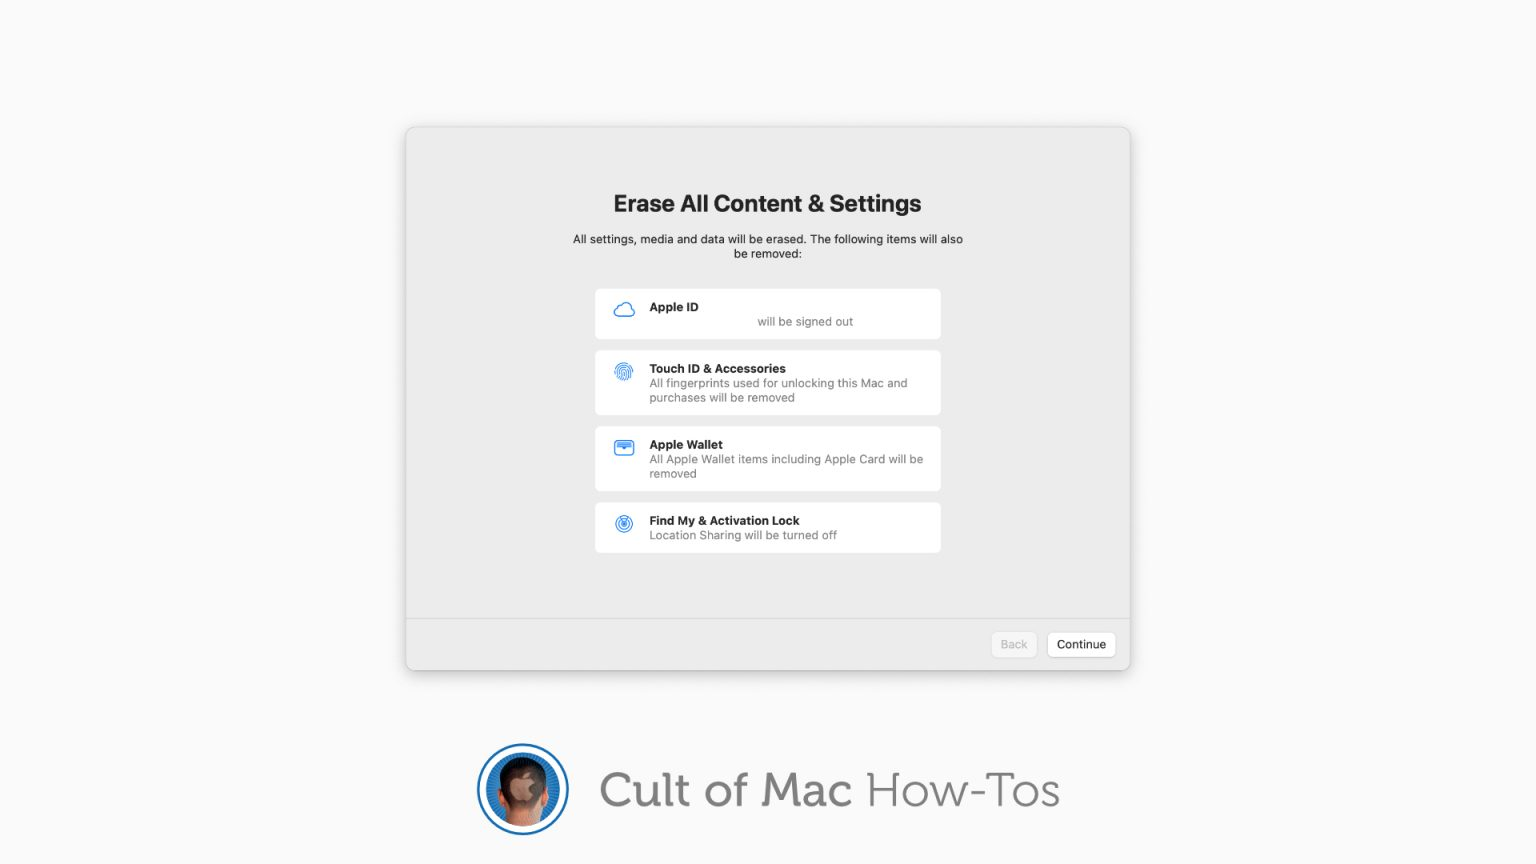 How to erase contents and settings in macOS Monterey